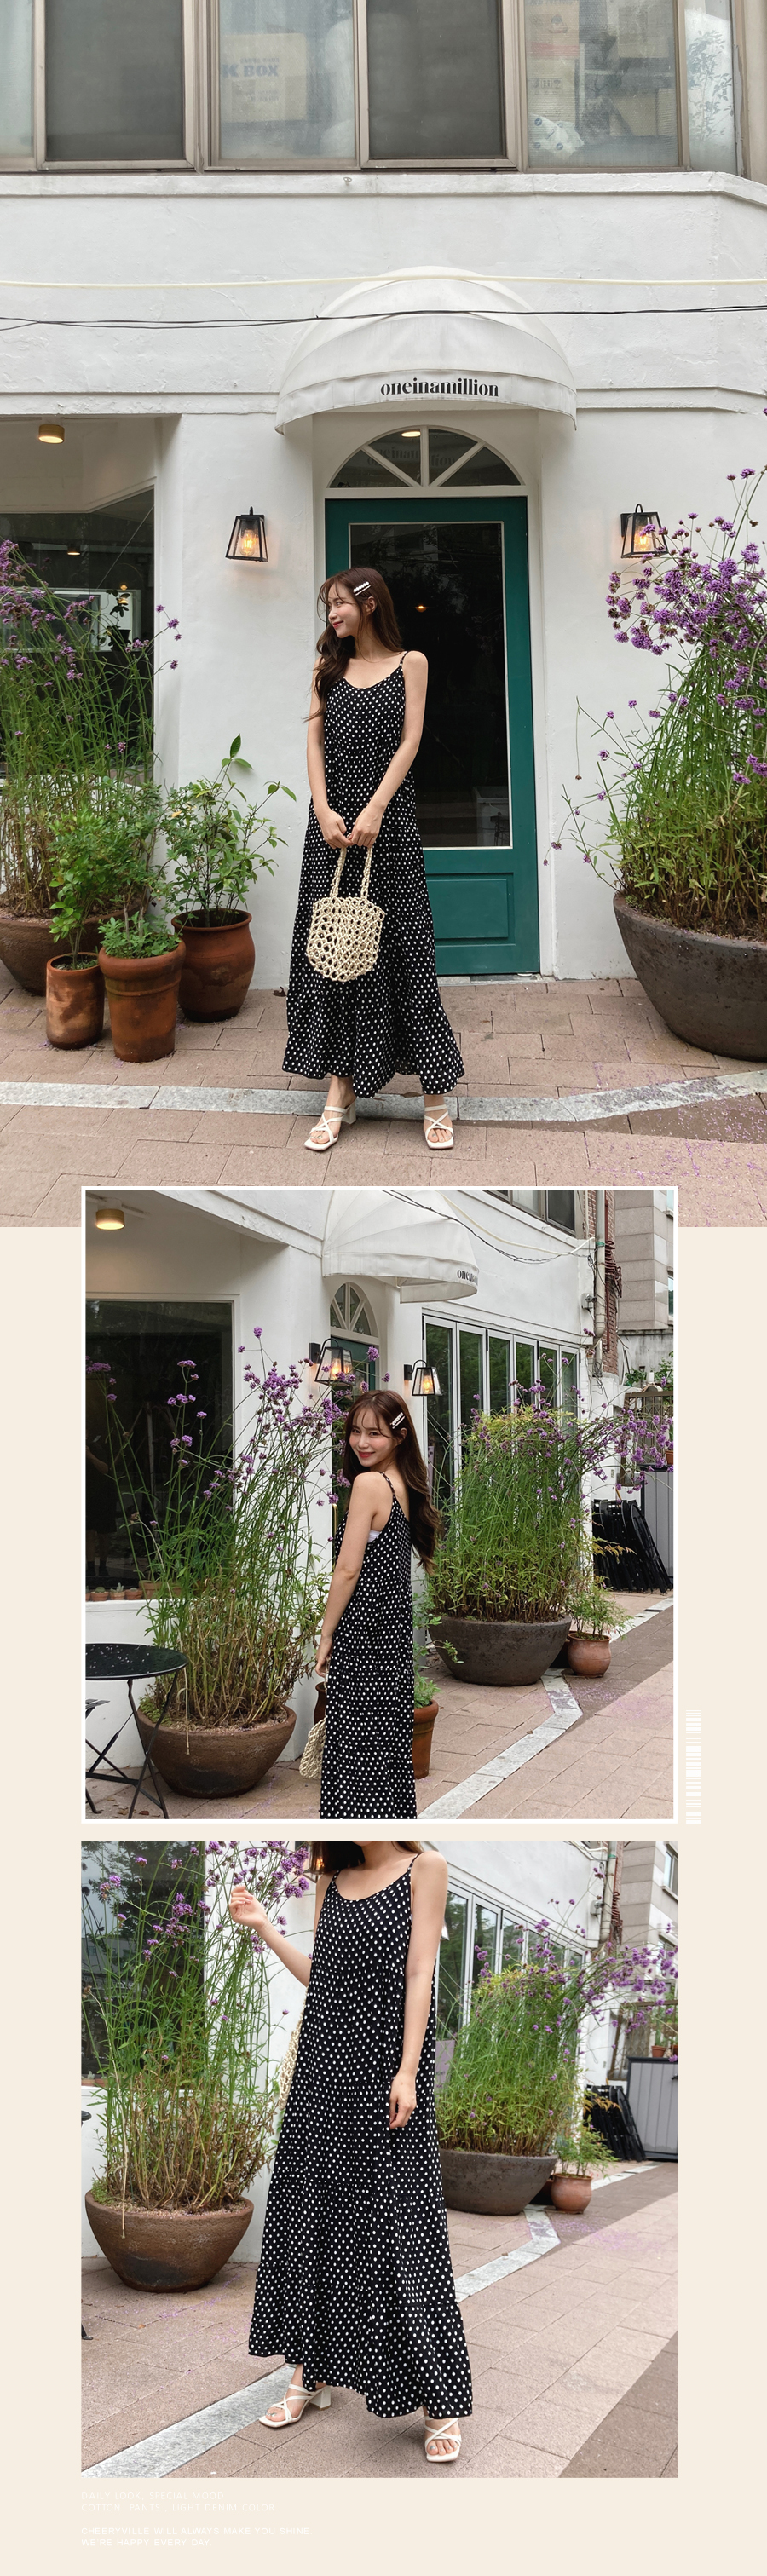 Dot dress you want to get